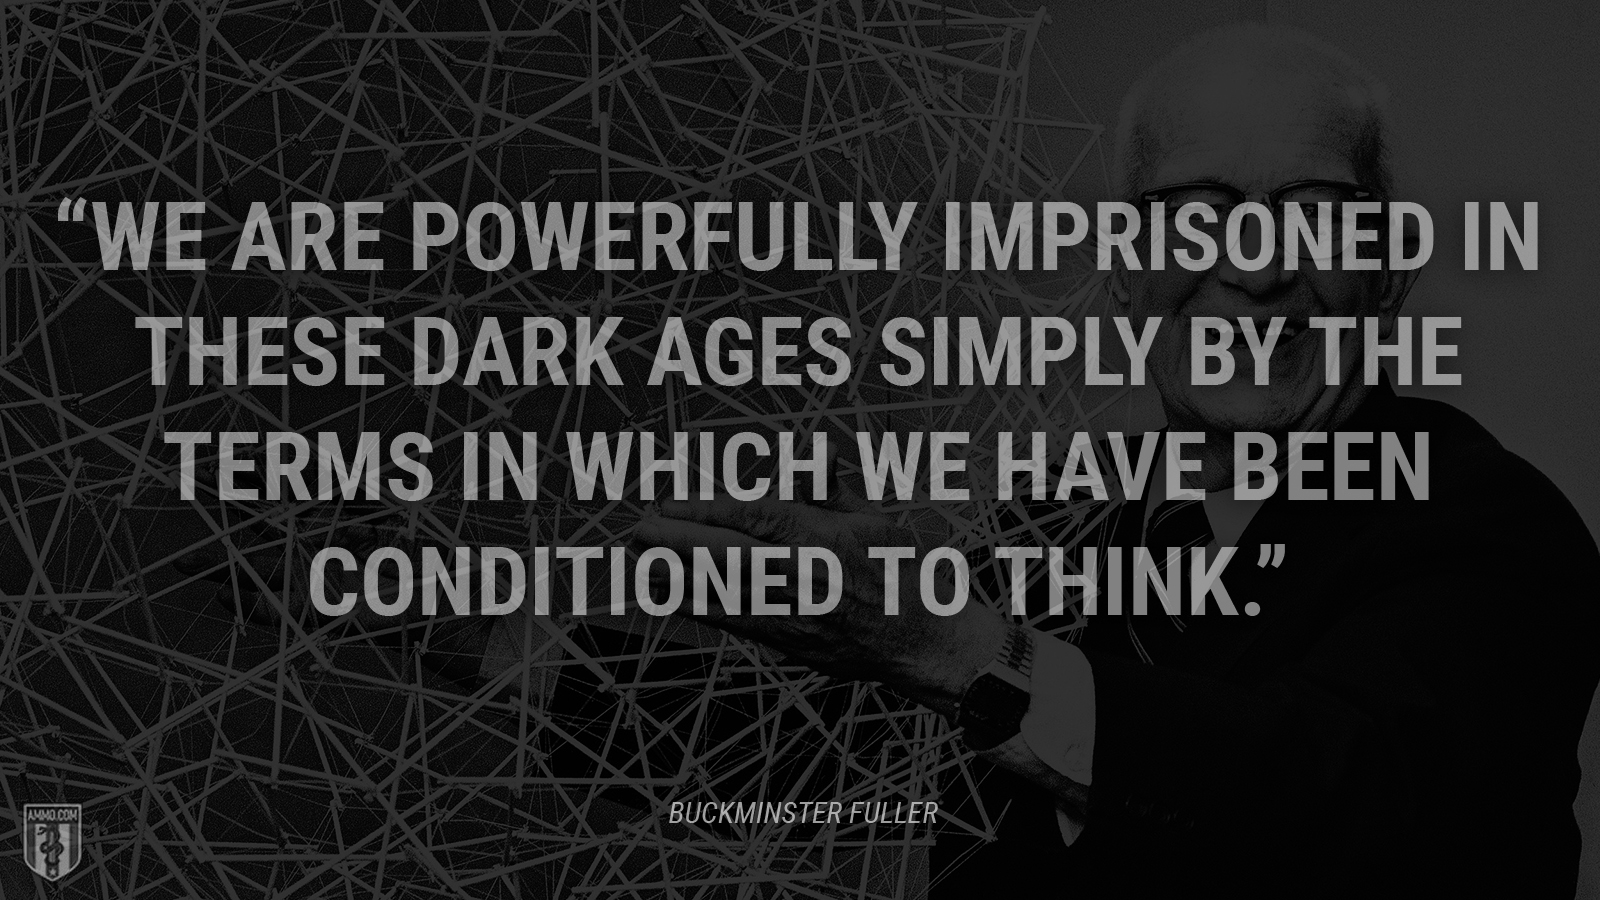 """We are powerfully imprisoned in these Dark Ages simply by the terms in which we have been conditioned to think."" - Buckminster Fuller"